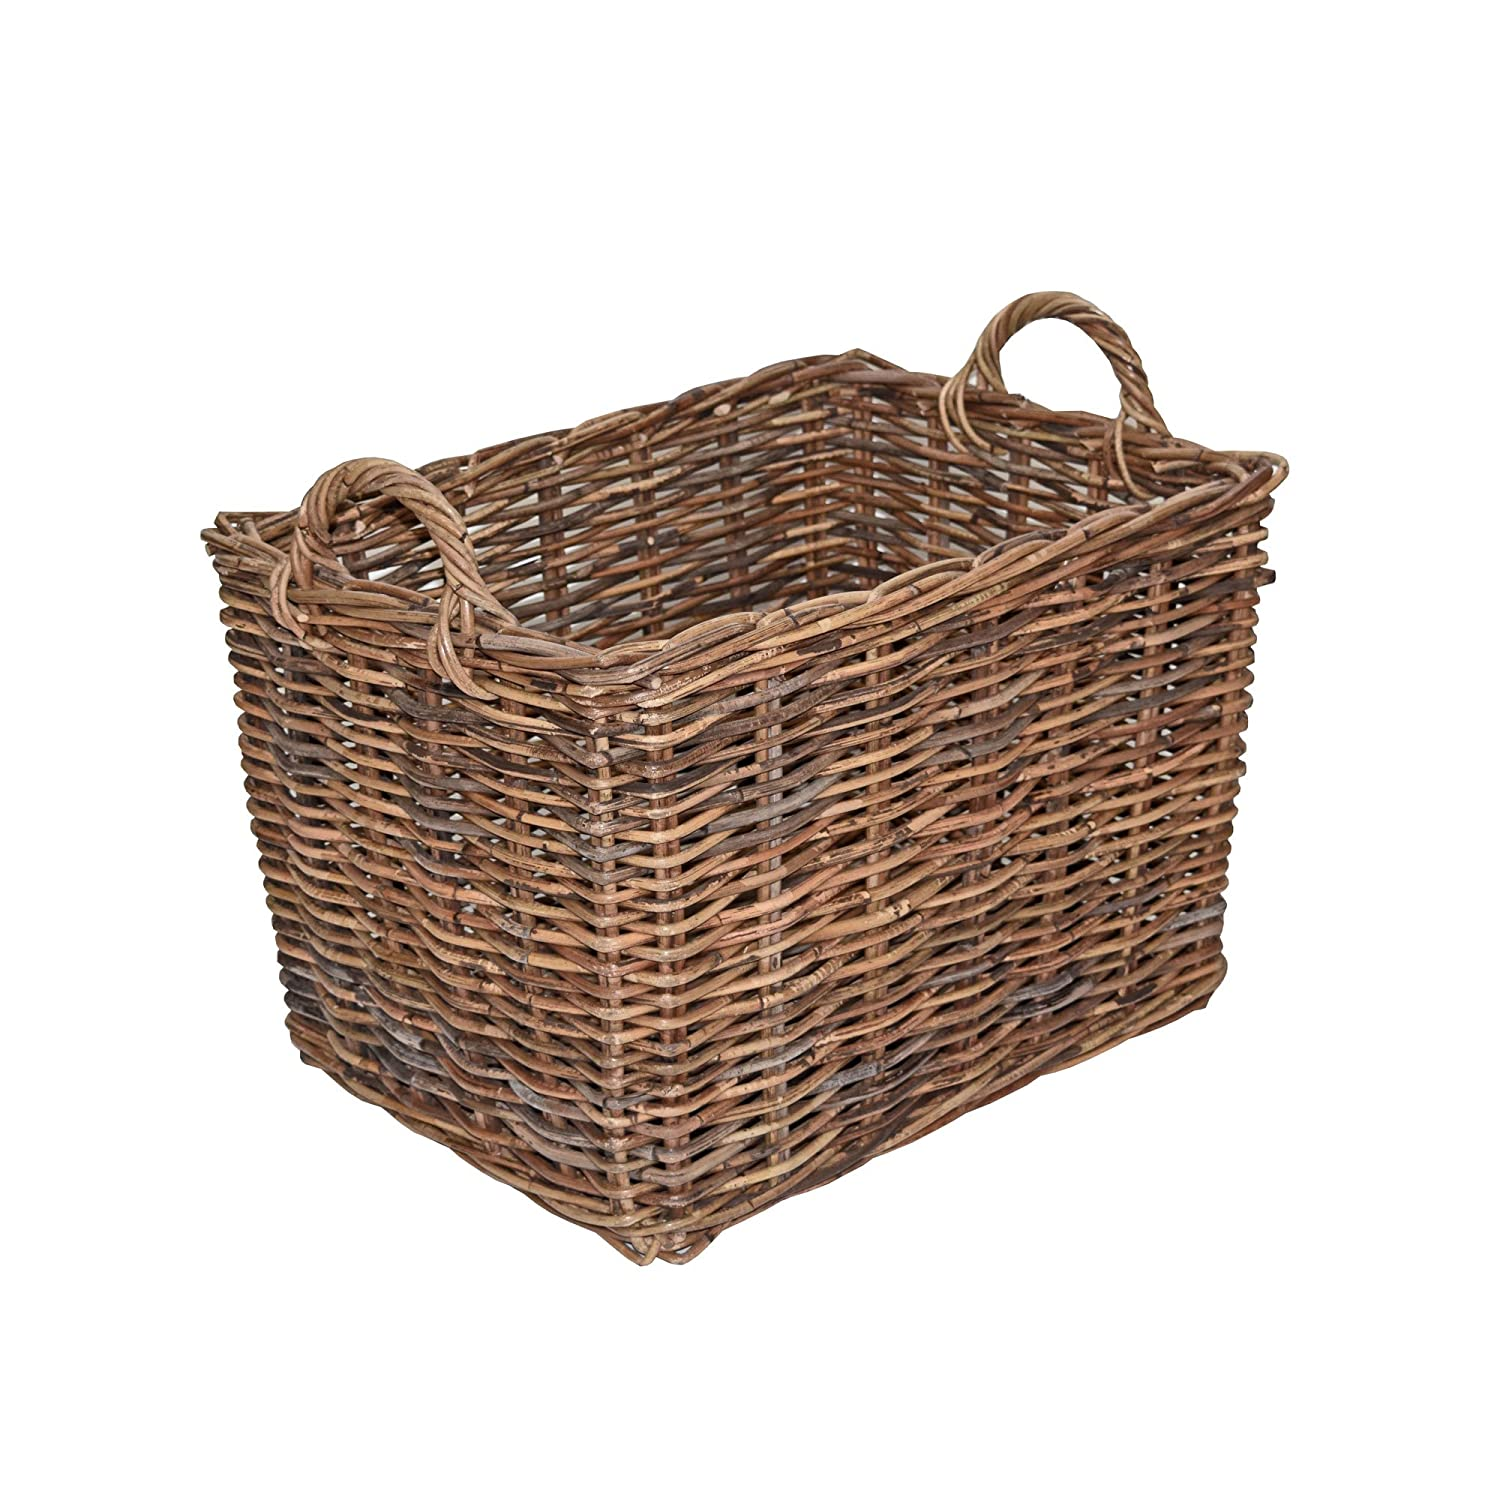 Rattan Log Basket, Rectangular Kindling Storage - Rustic Brown (Small - L 39 x W 26 x H 28 cm, with handle H 35 c) Casa Furnishings